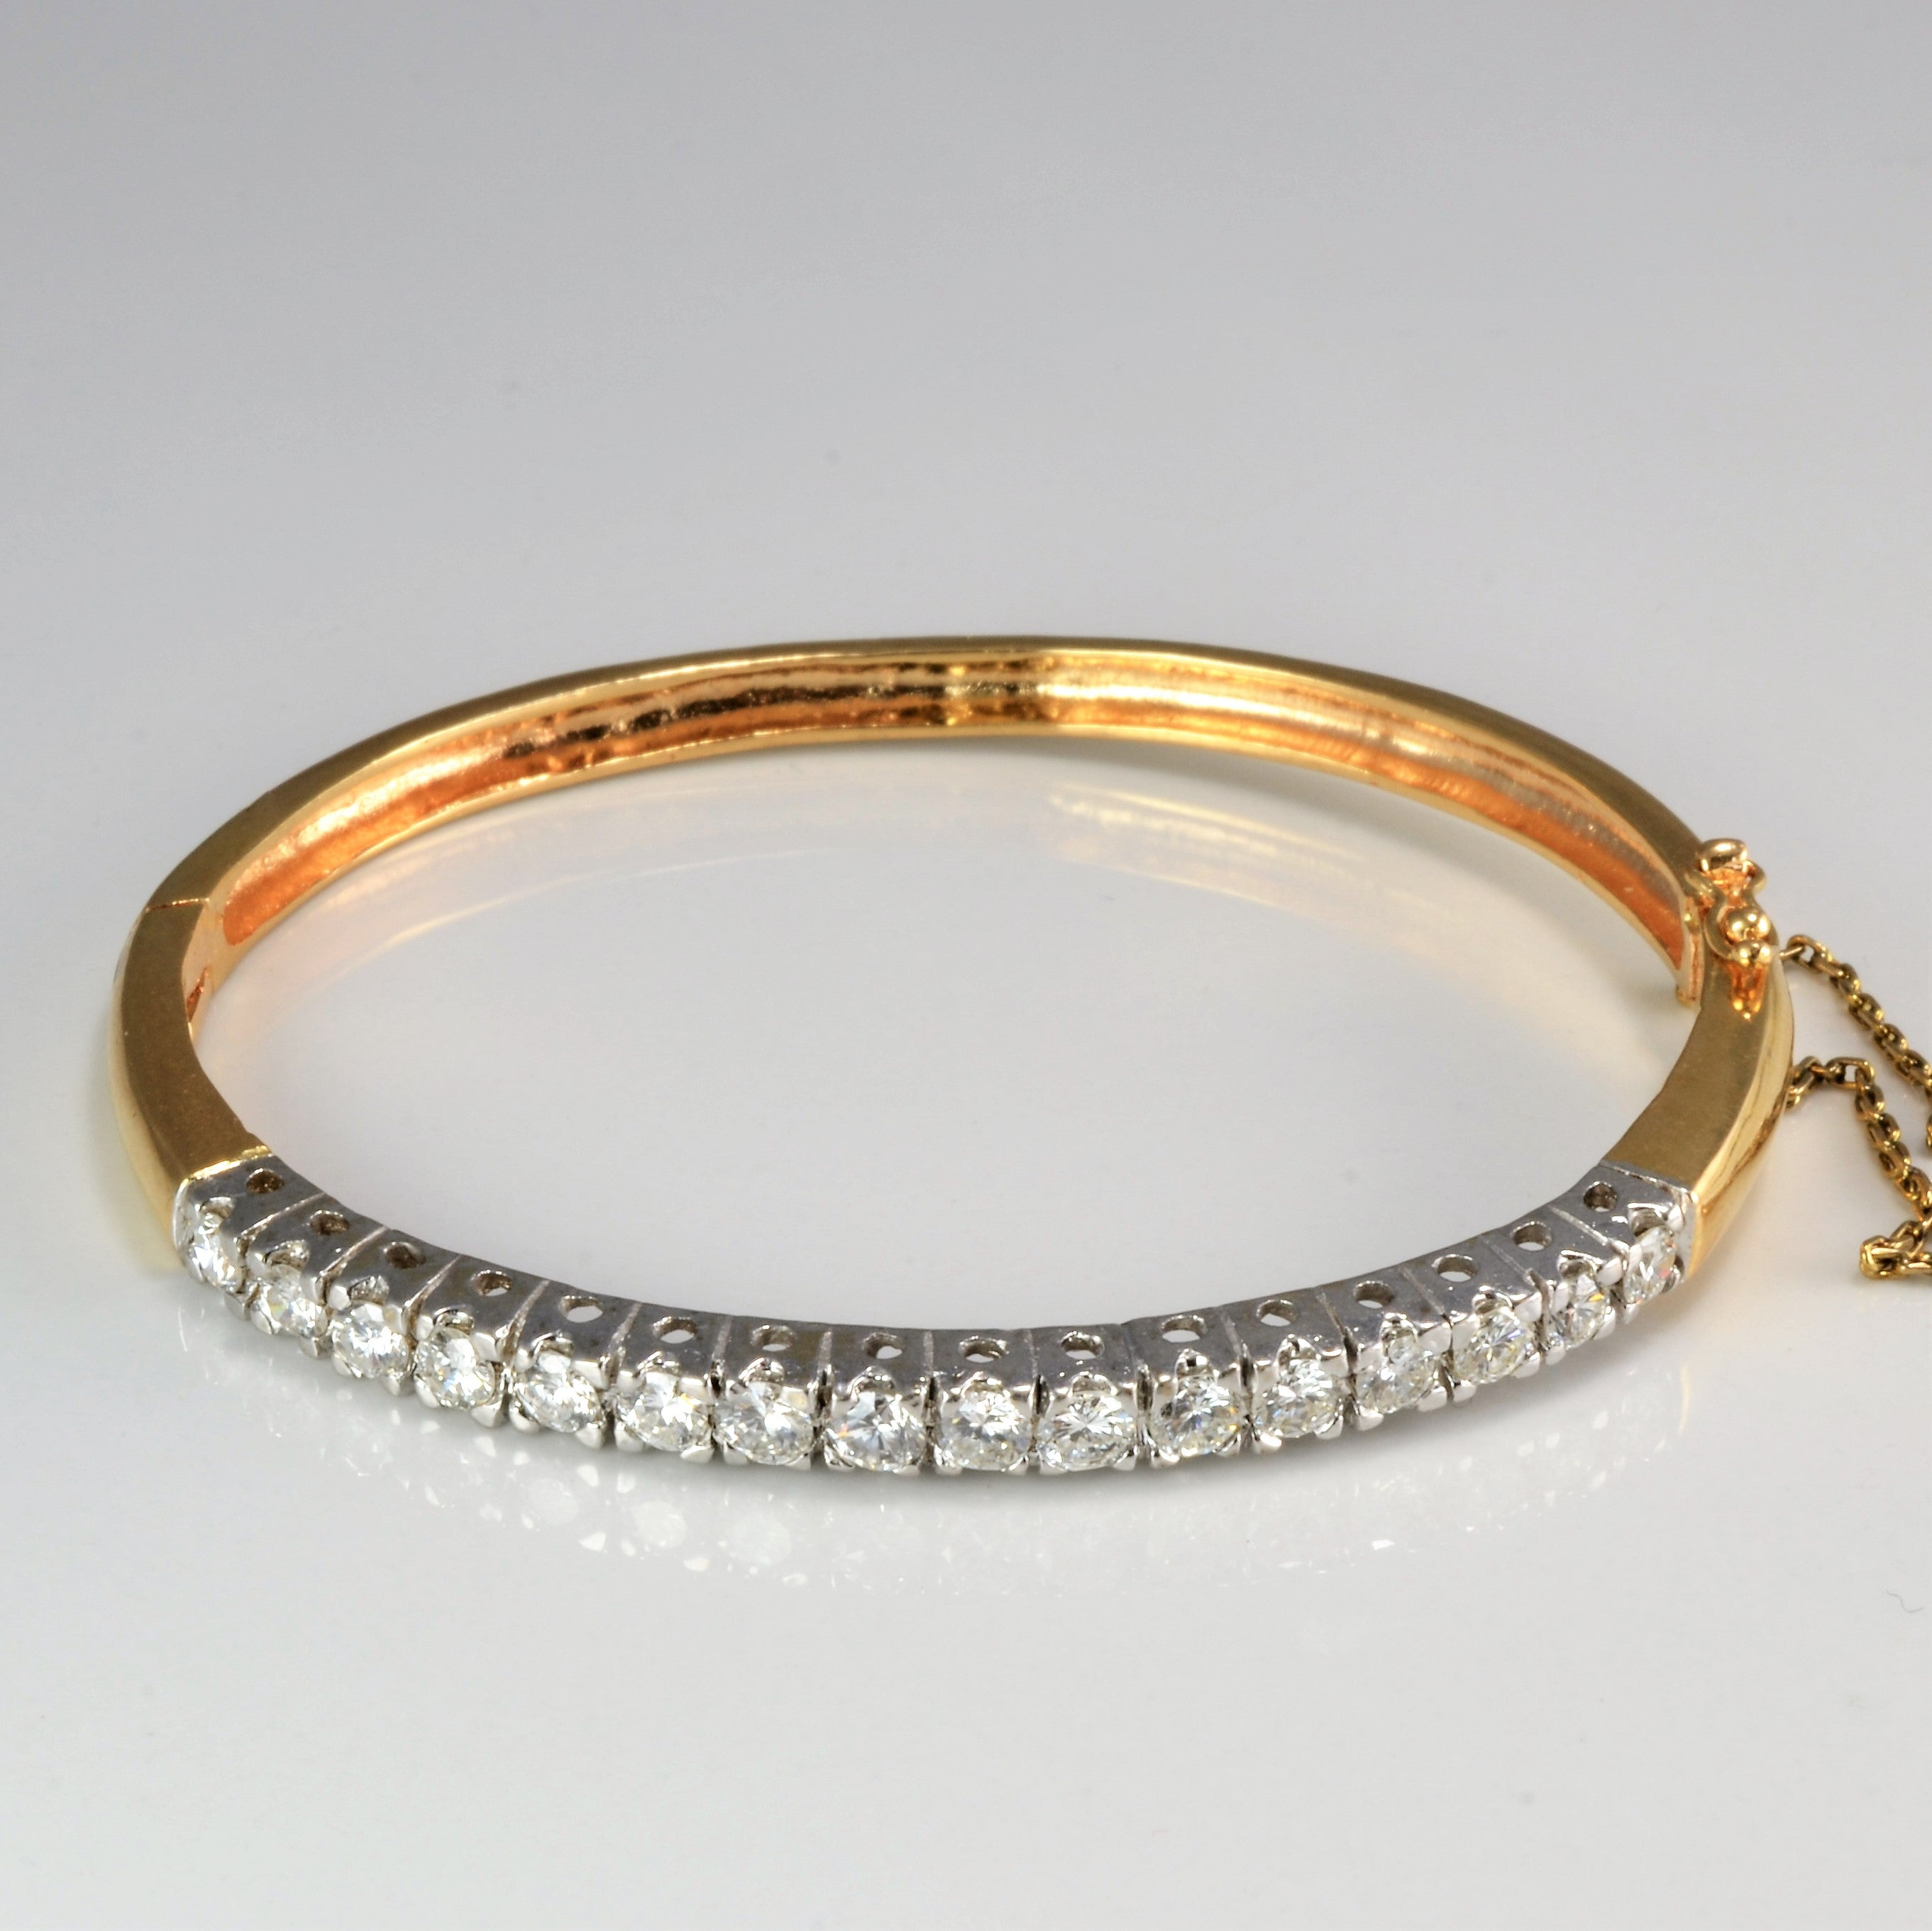 mikolay bracelet pave gold escobar rene products bangle by silver rose cuff desires in bangles diamond stone